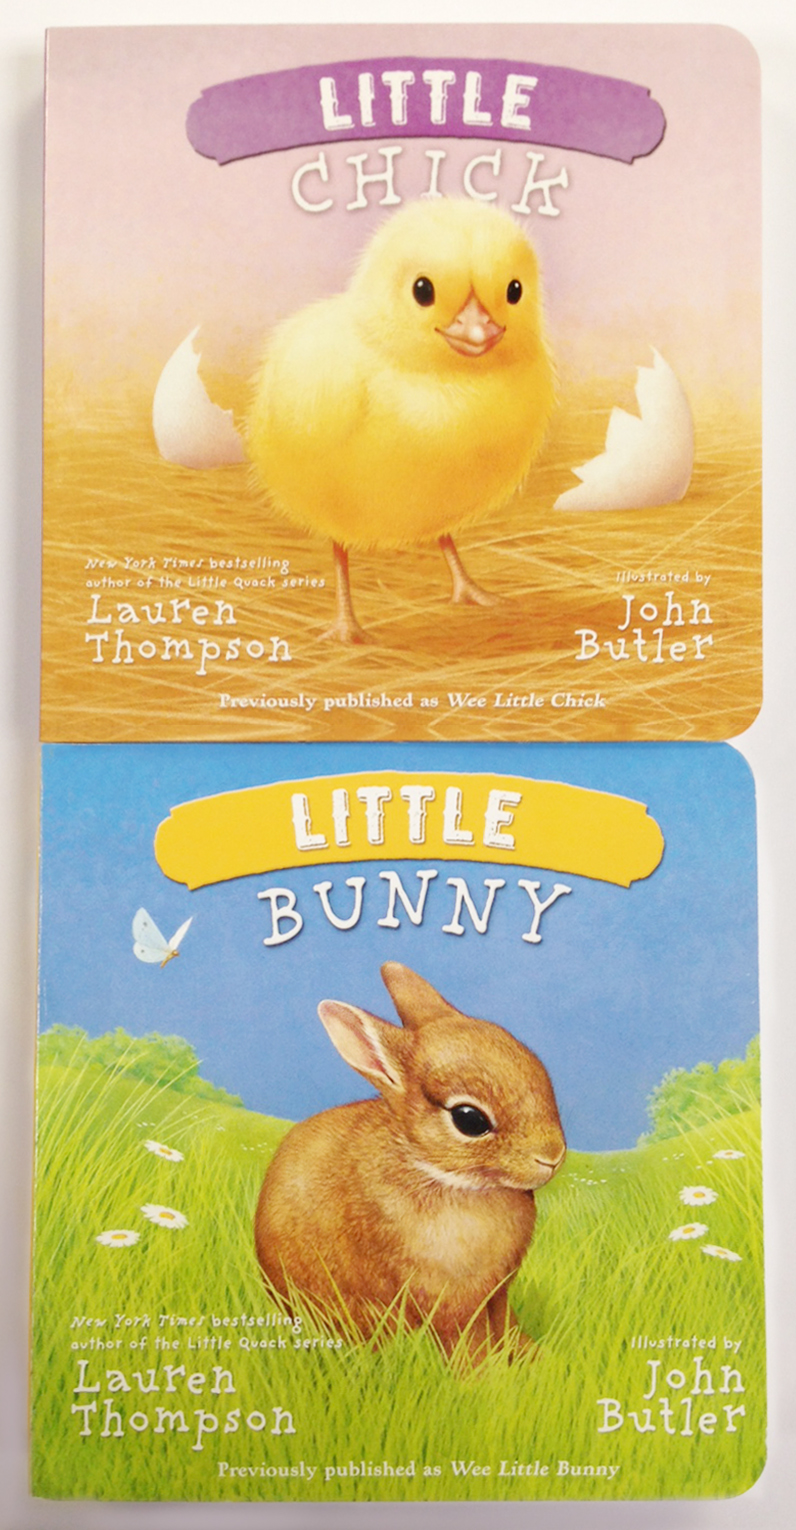 Little-chick-little-bunny-vertical-2-pack-9781481418768_hr